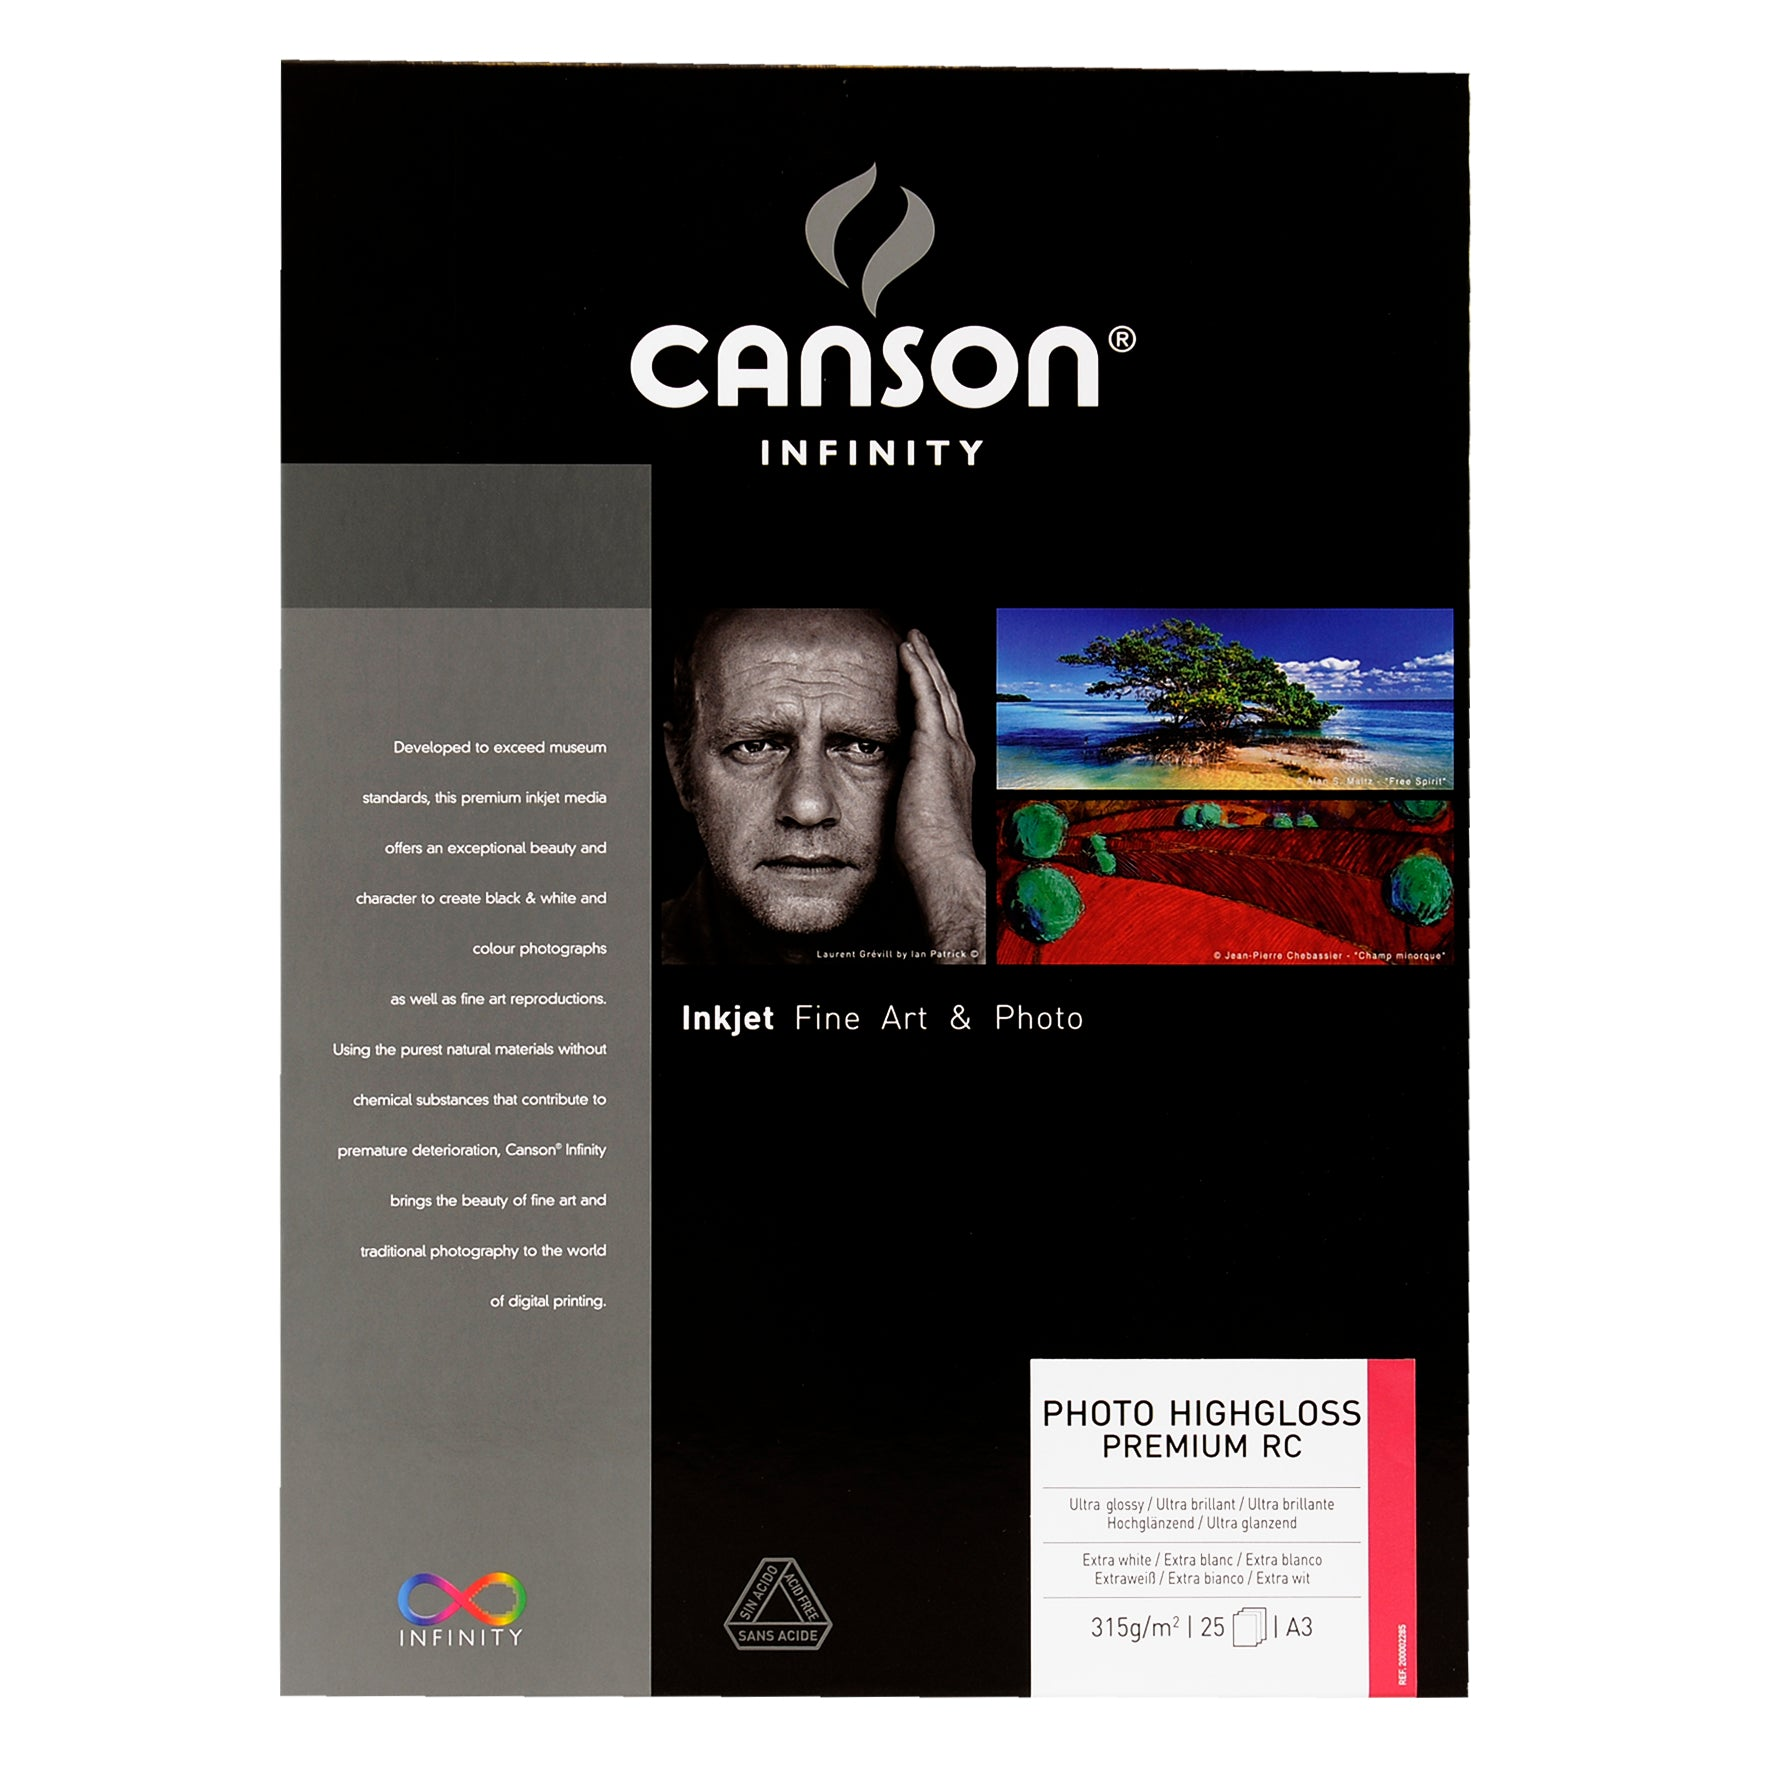 Canson Infinity Photo High Gloss Premium RC - 315gsm - A3 - 25 sheets